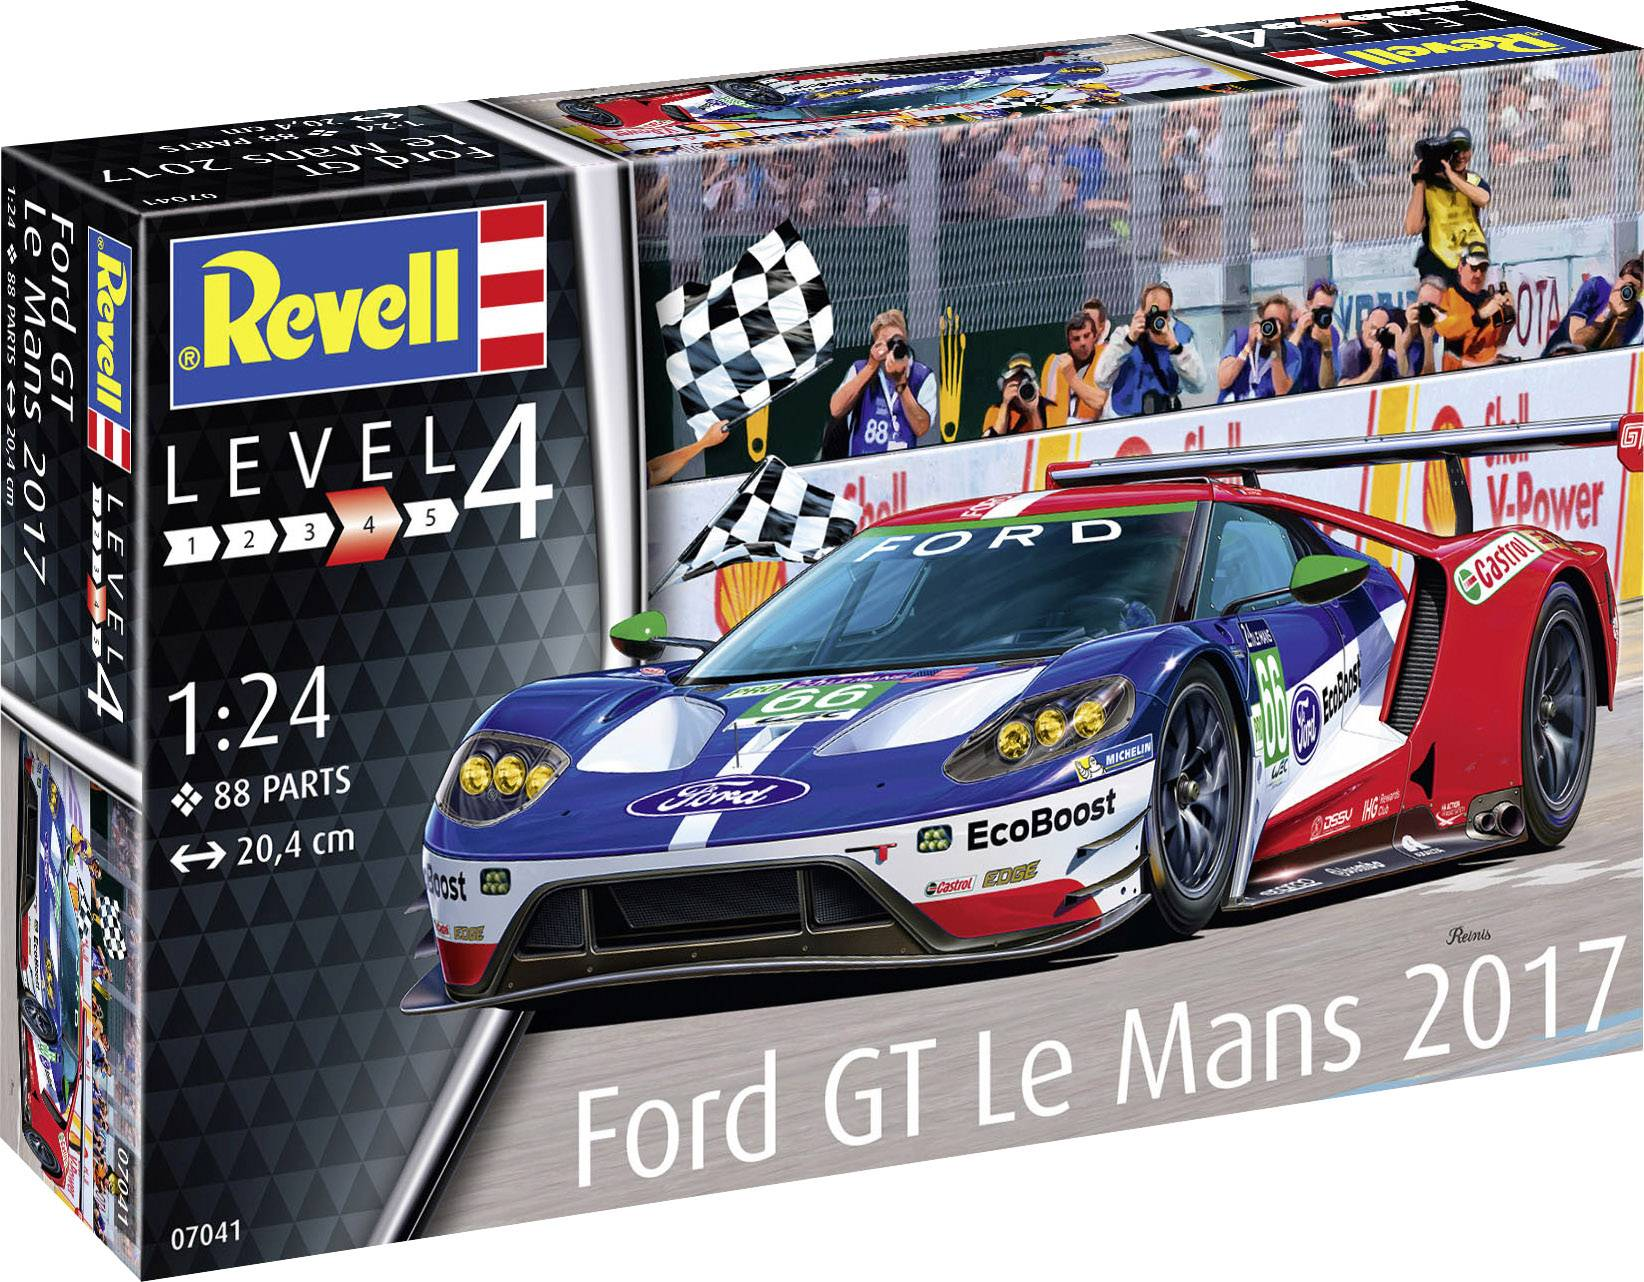 Revell 07041-1//24 Ford Gt le Mans 2017 Neuf